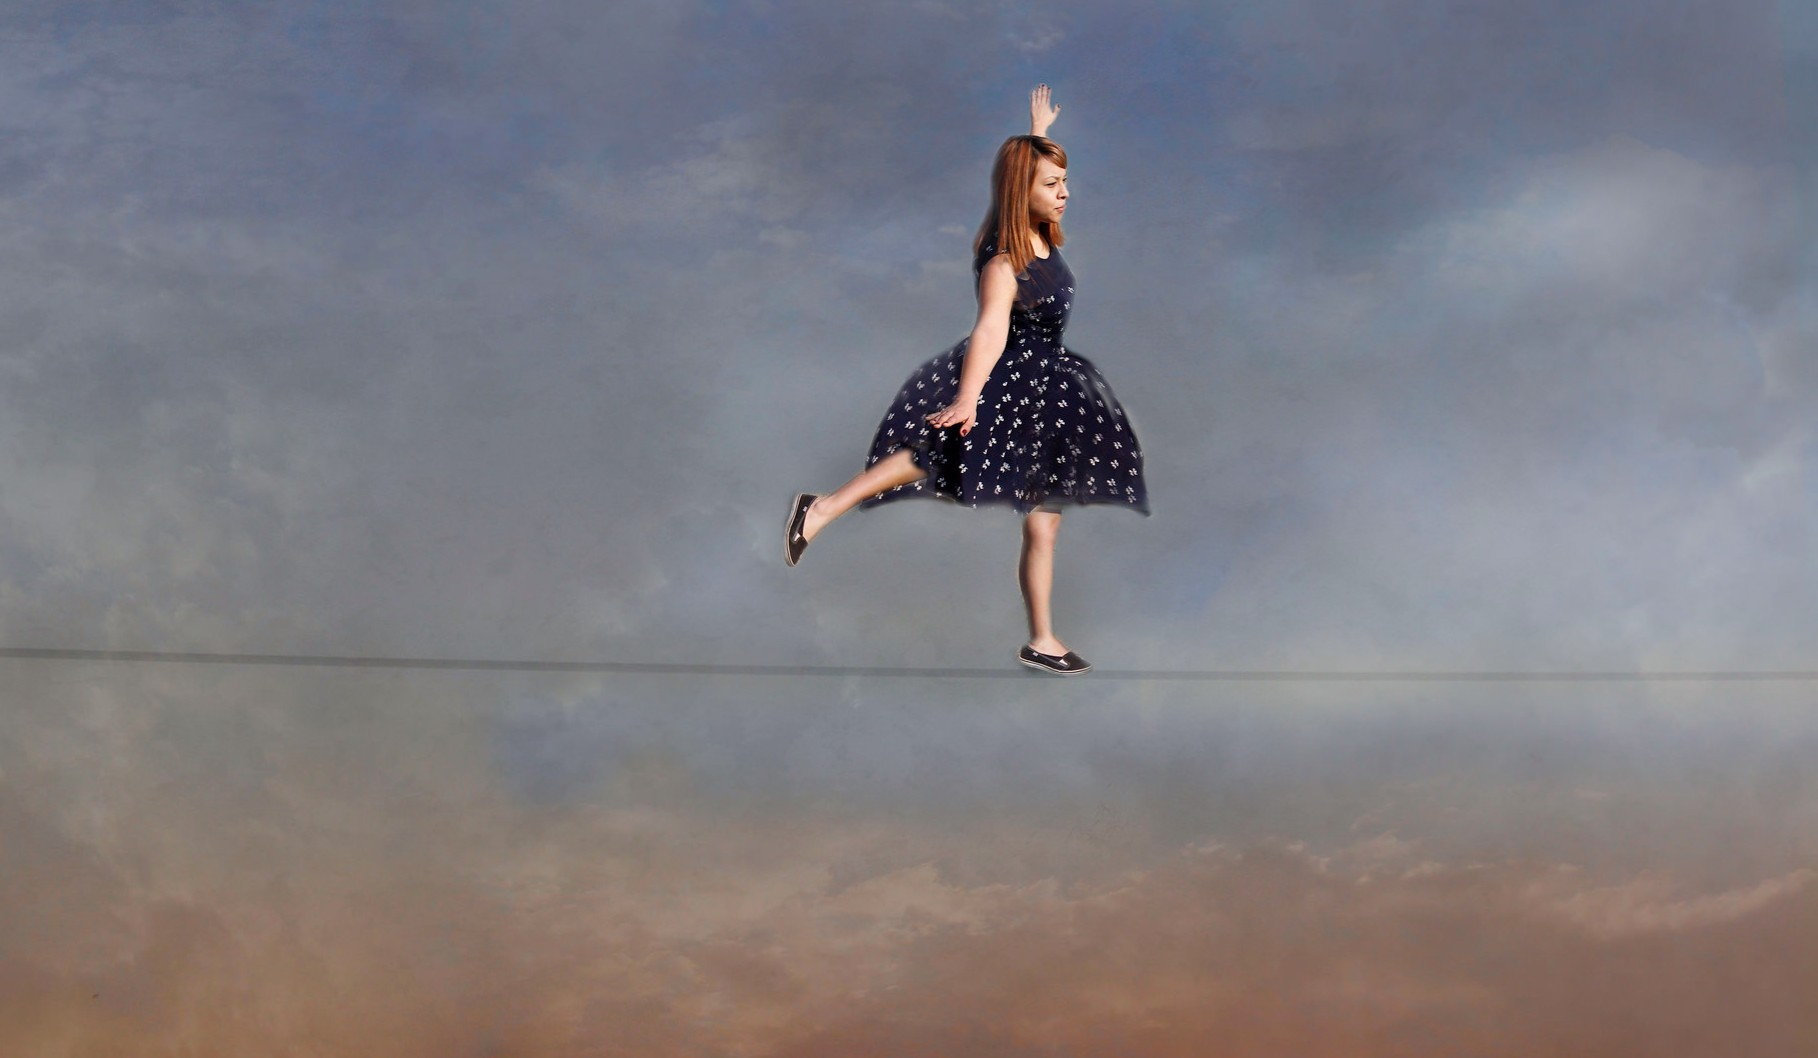 Balance life blog - child balancing on high tight rope